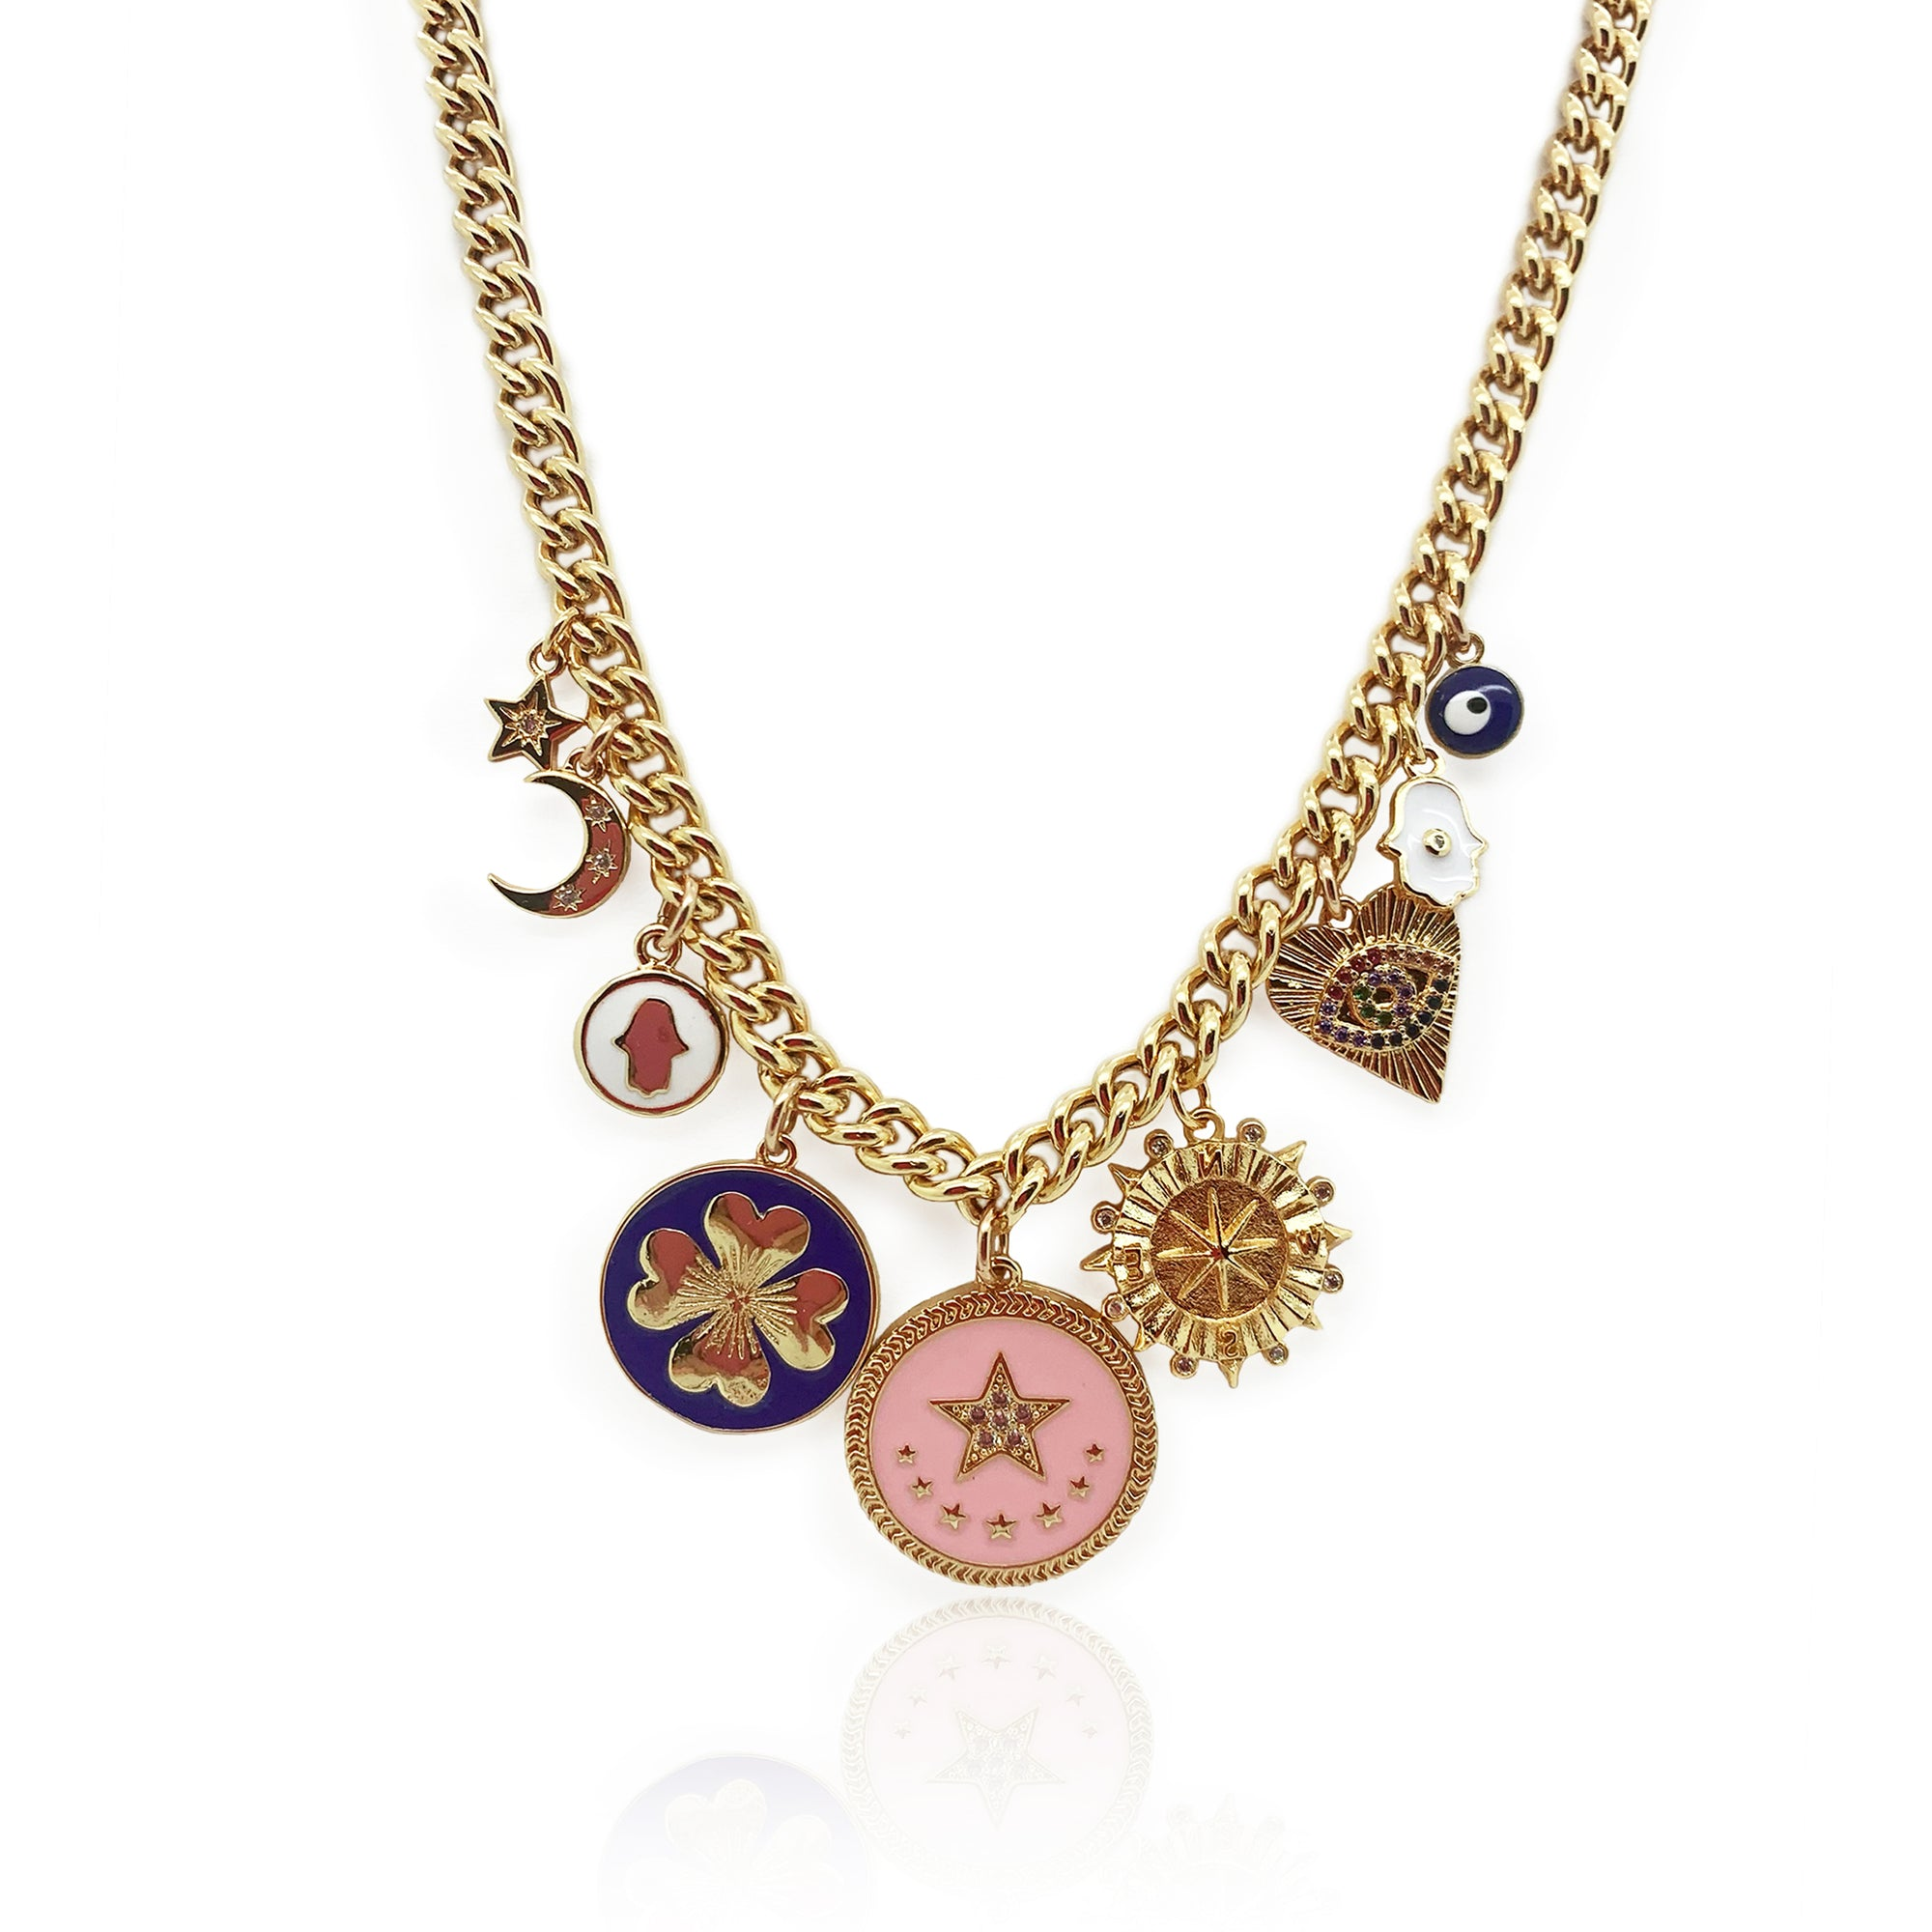 Marci Lucky Charm Necklace